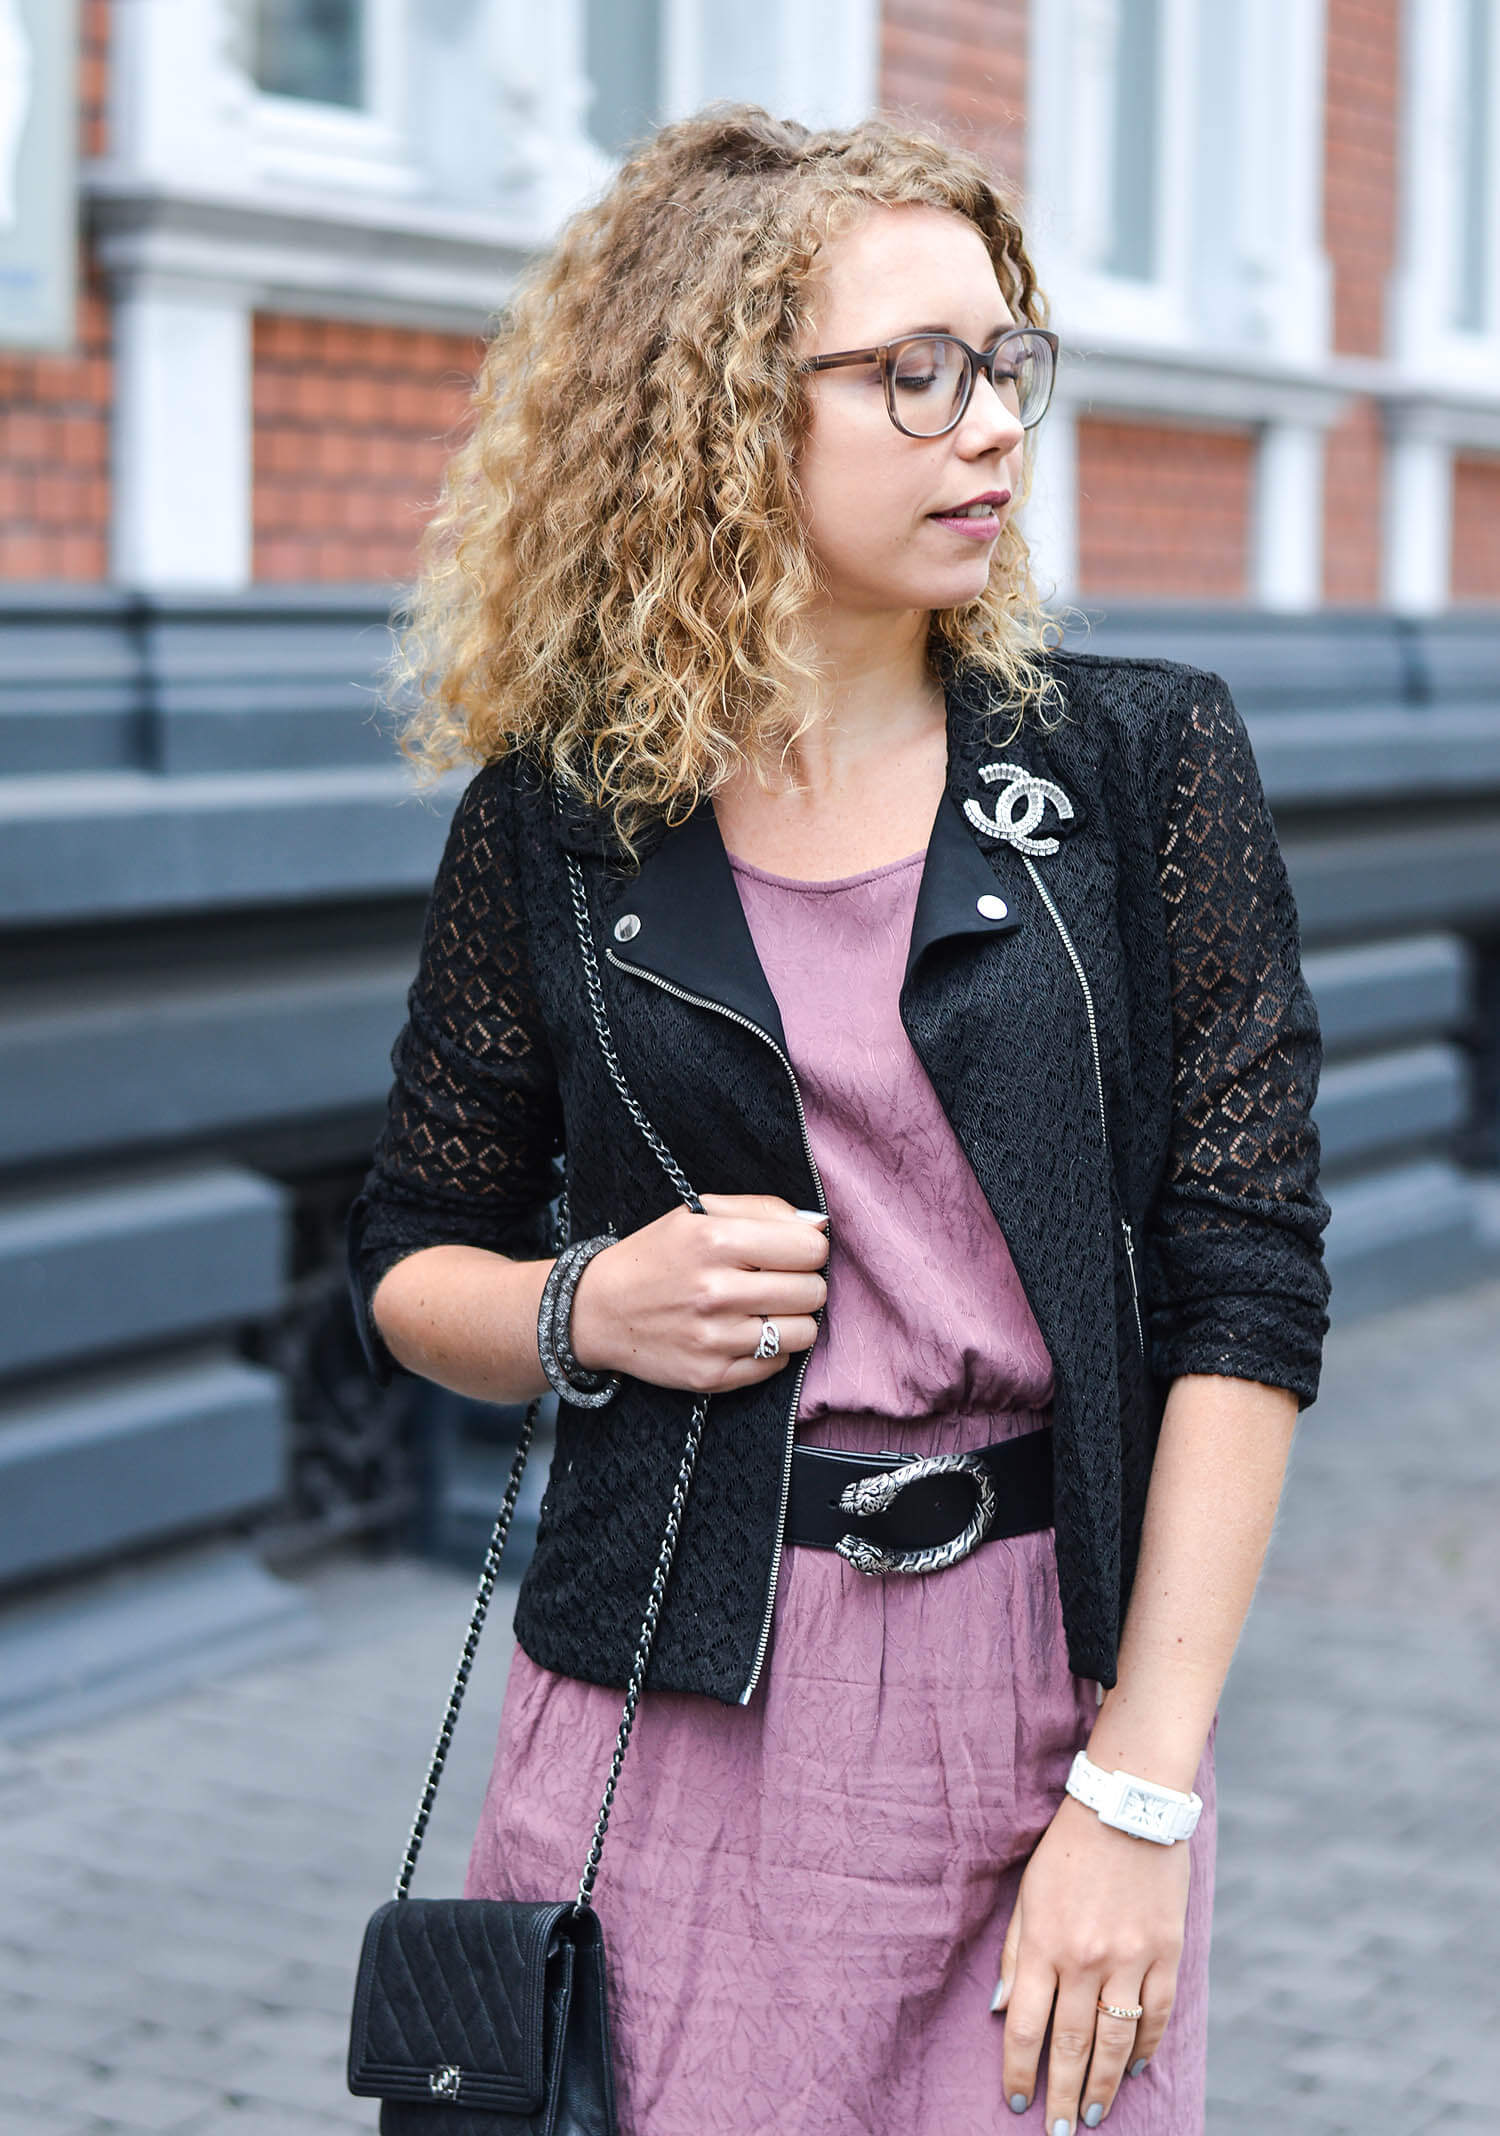 Kationette-fashionblog-nrw-Outfit-Pink-Dress-Gucci-Belt-Zara-Lace-Jacket